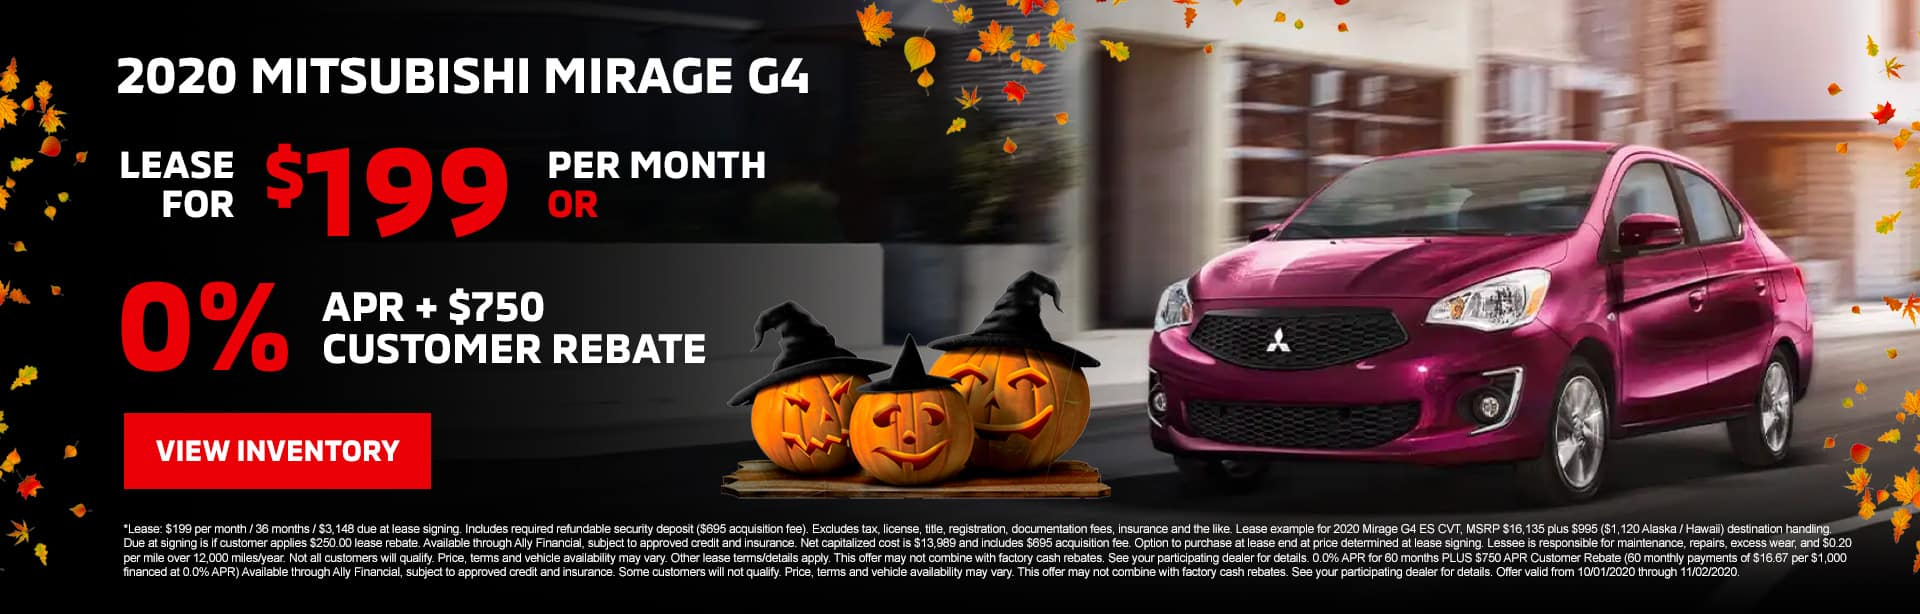 2020 Mitsubishi Mirage G4 Lease for $199/mo with $3,148 due at signing OR 0.0% APR + $750 Customer Rebate